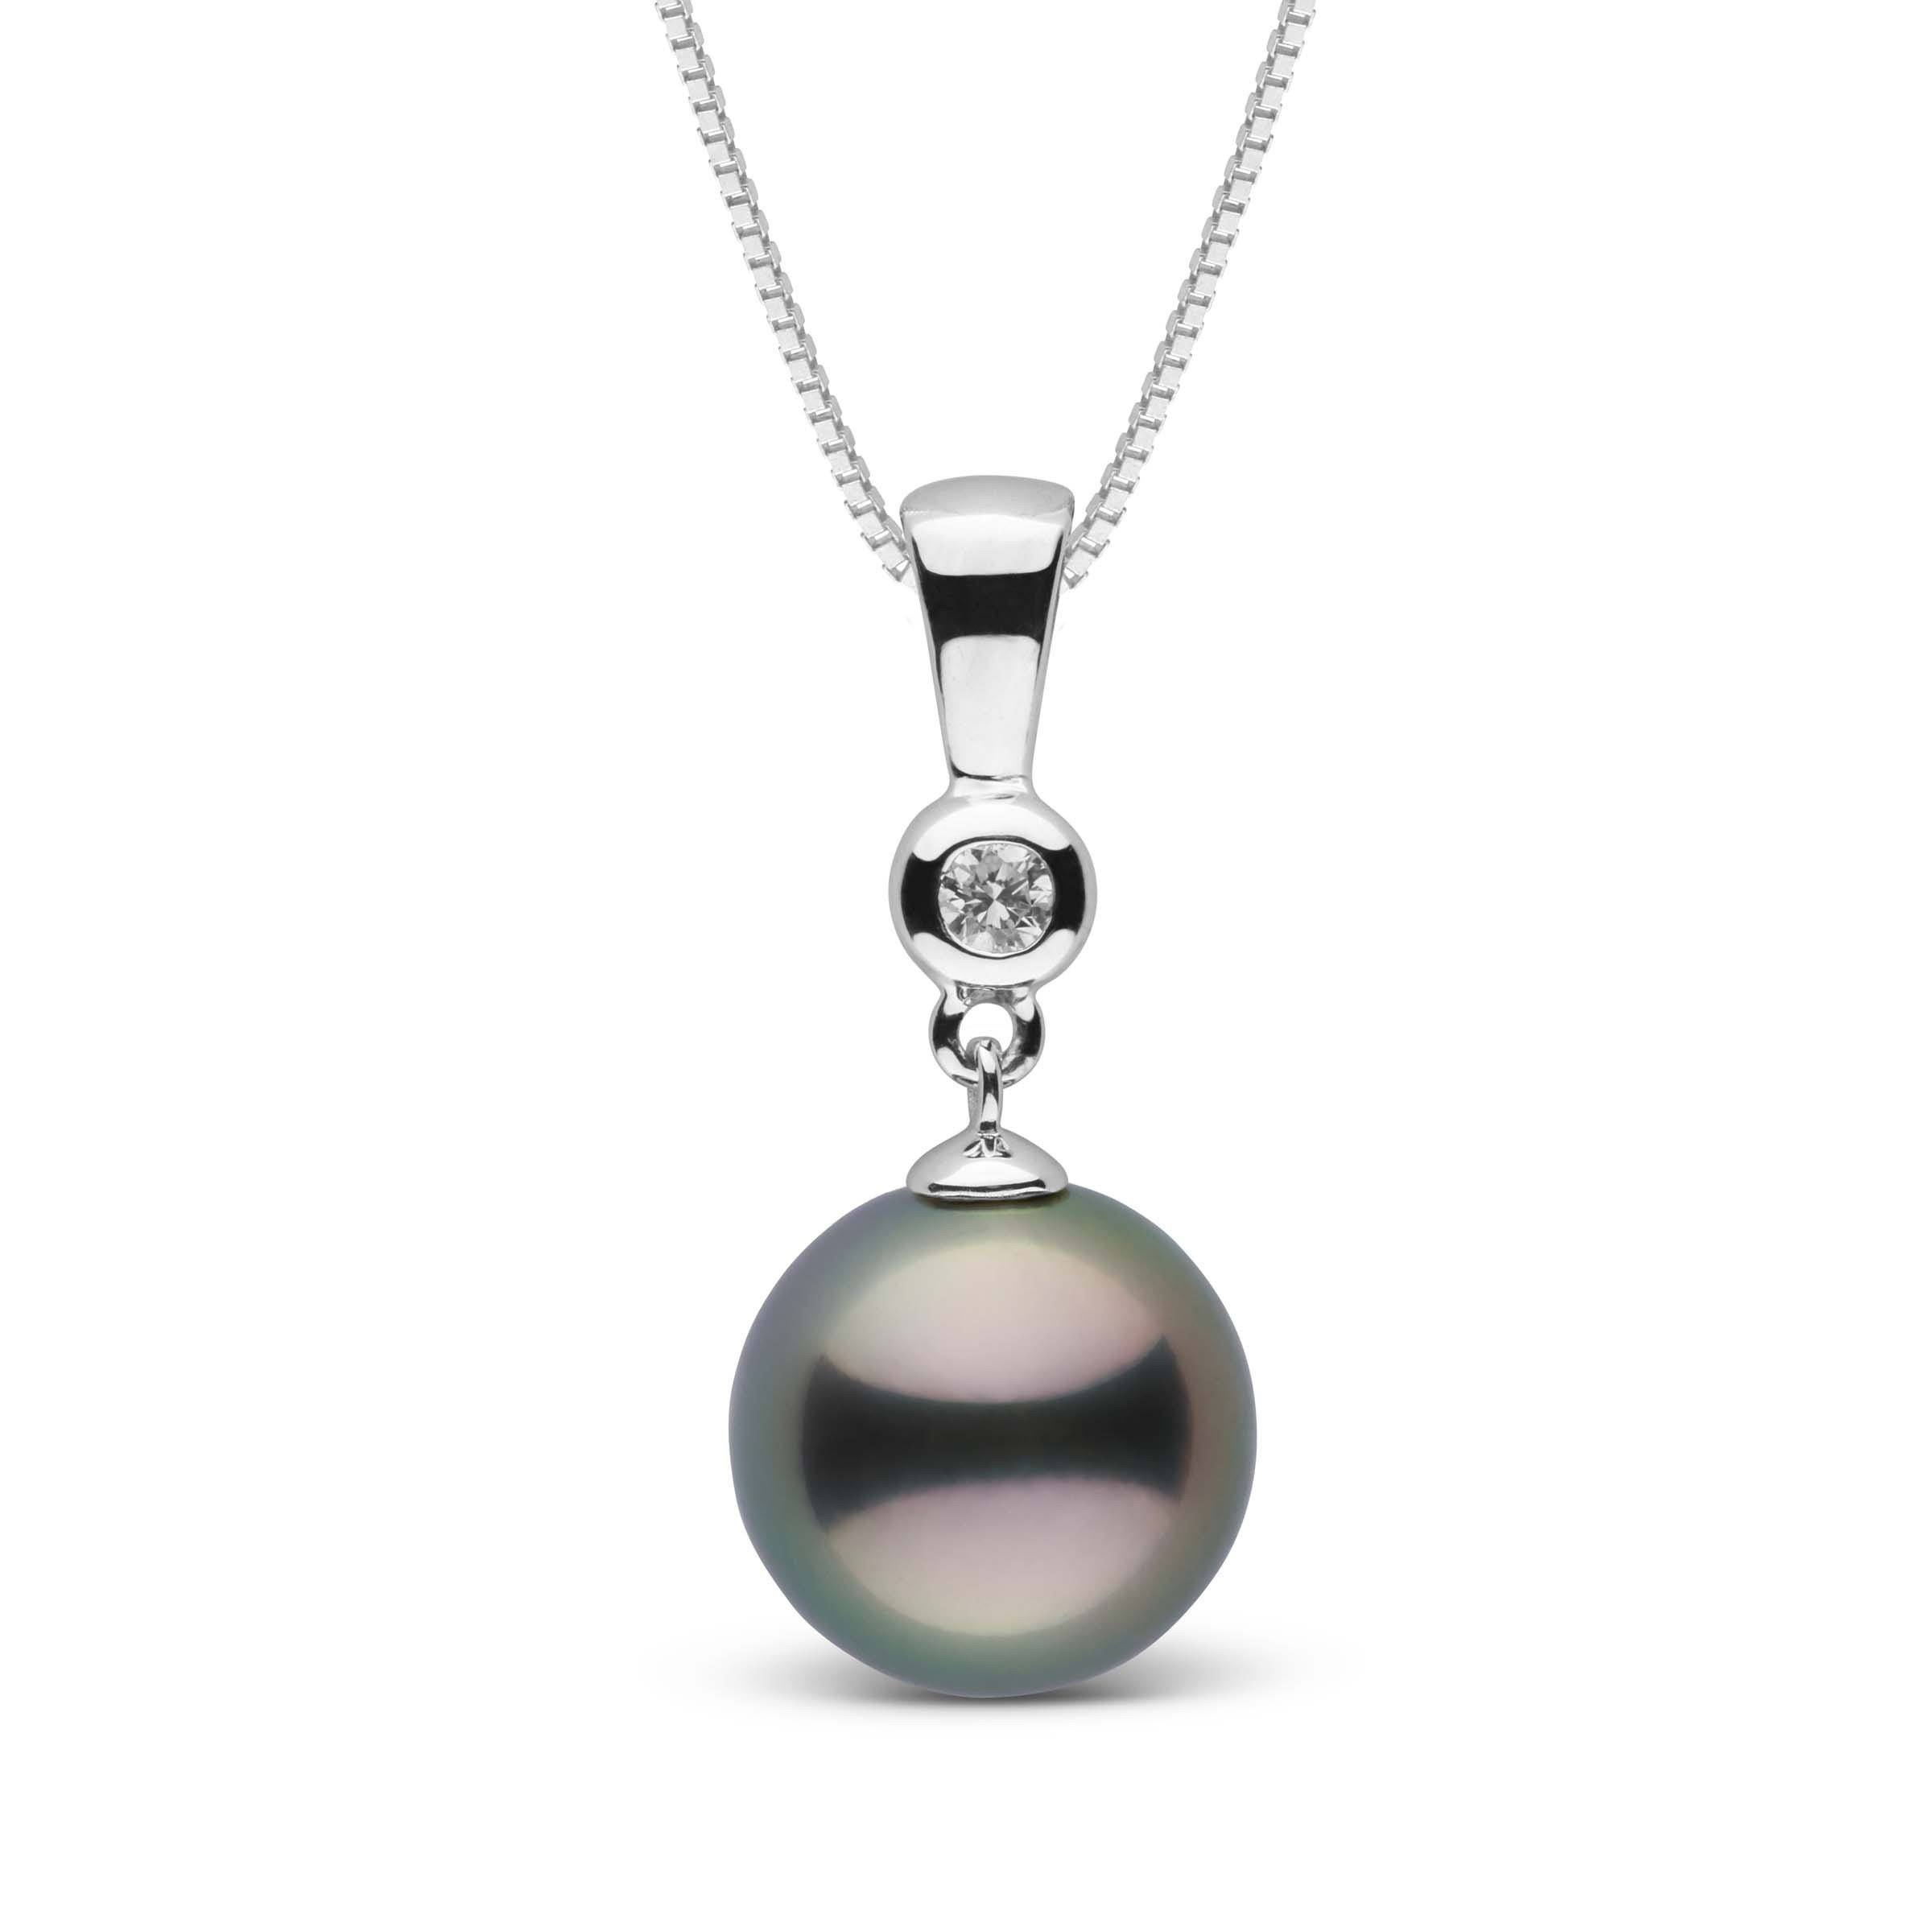 Romantic Collection 10.0-11.0 mm Tahitian Pearl & Diamond Pendant